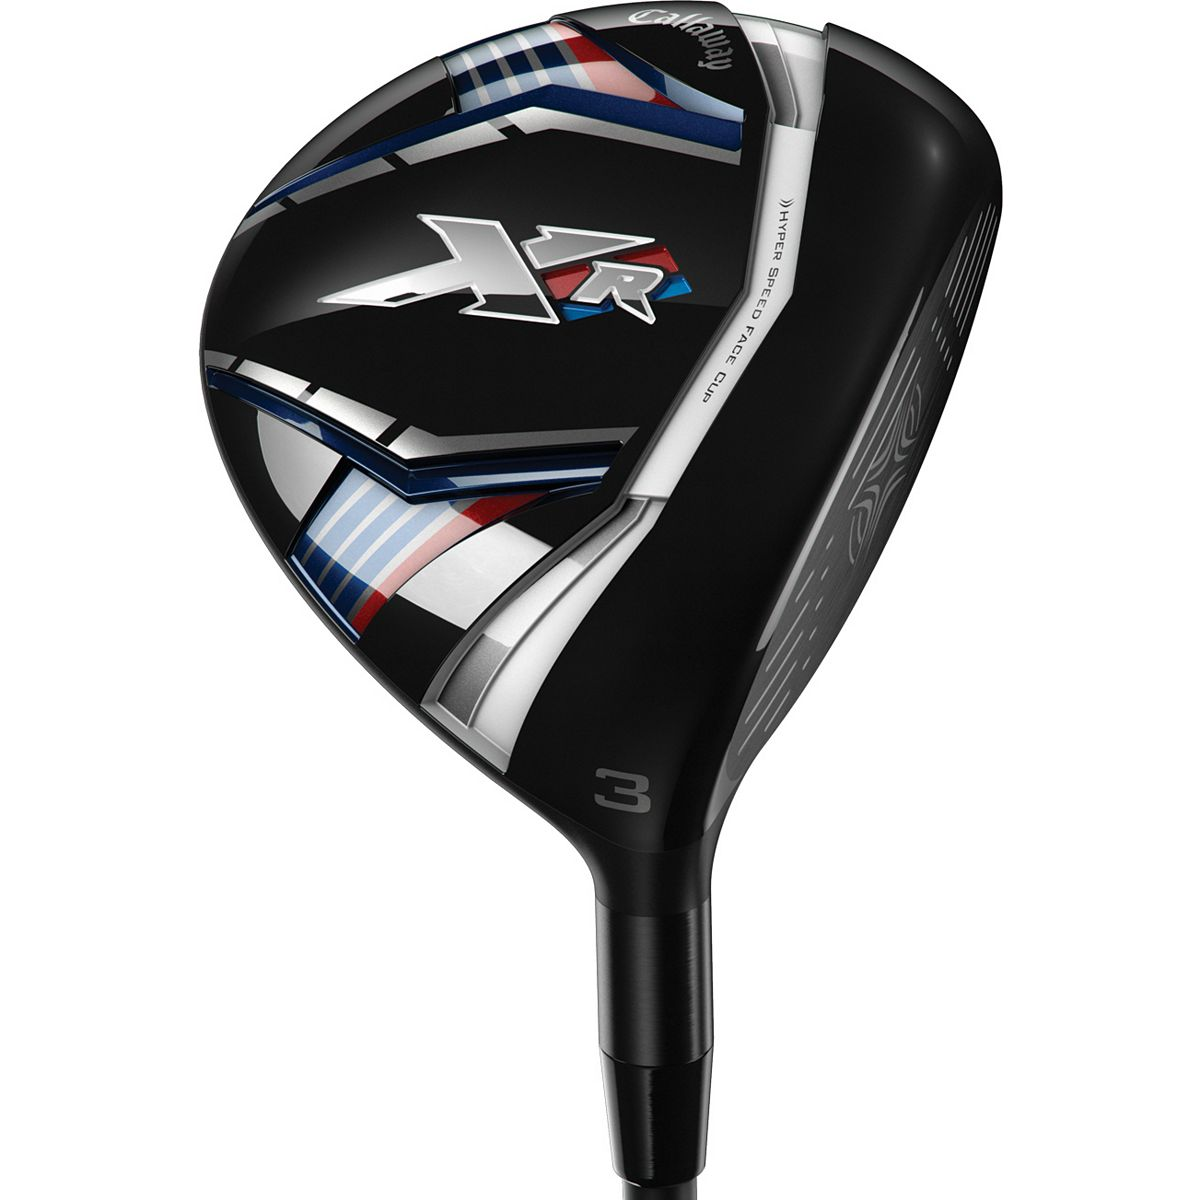 New Callaway XR Fairway Wood w/ Project X LZ Shaft Choose Club Flex & Dexterity